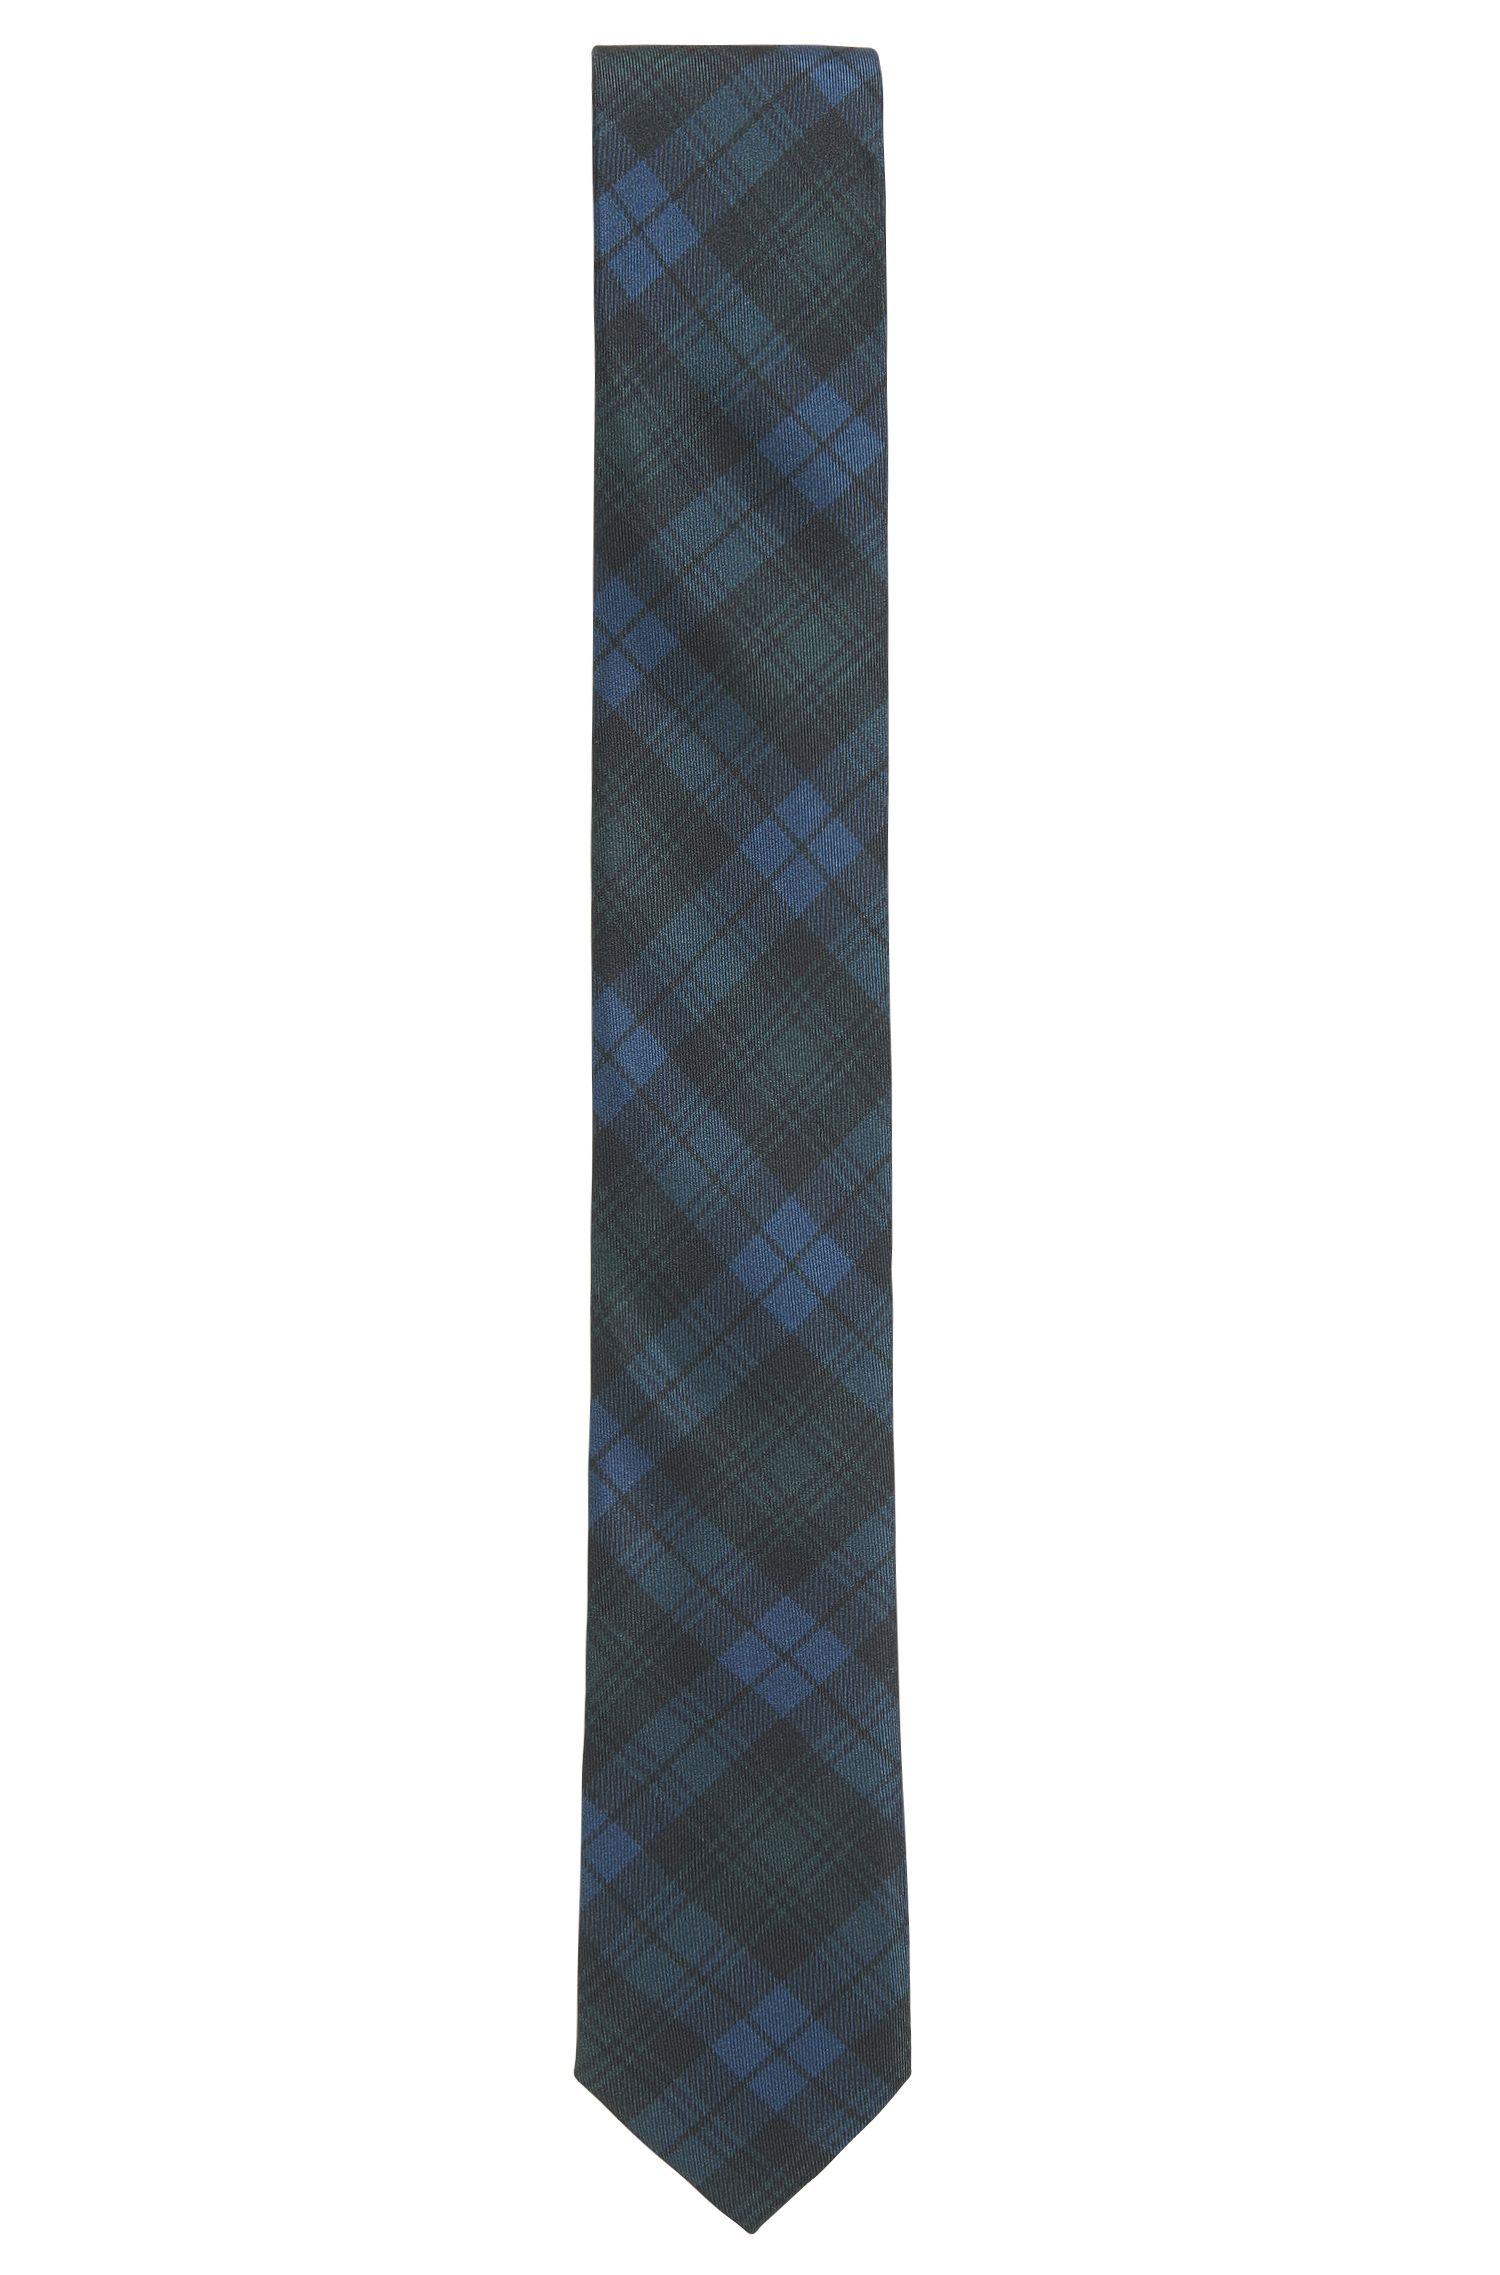 Blackwatch-checked tie in silk